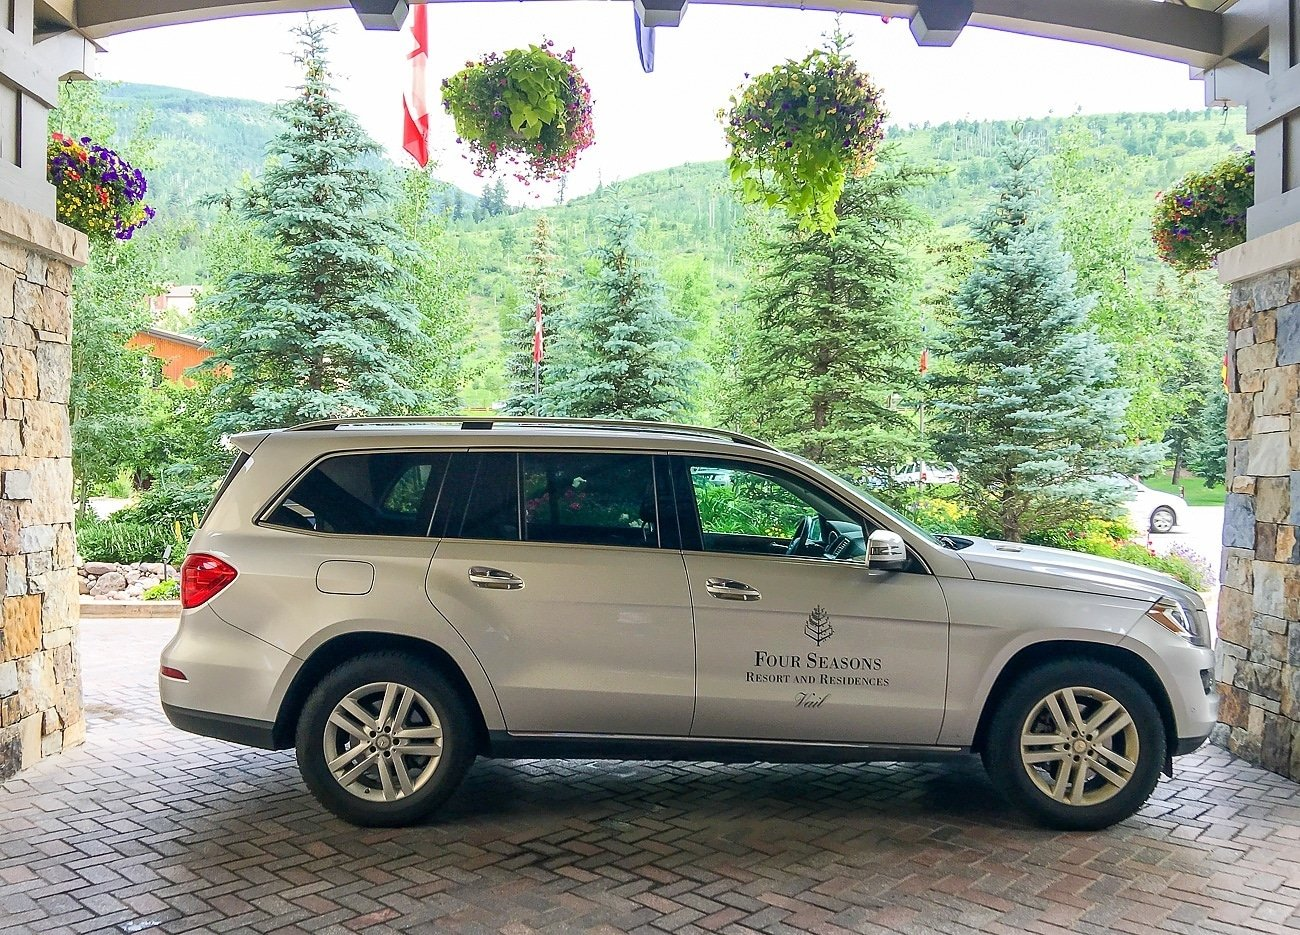 The Four Seasons Vail house car takes guests to ski lifts, restaurants and more.